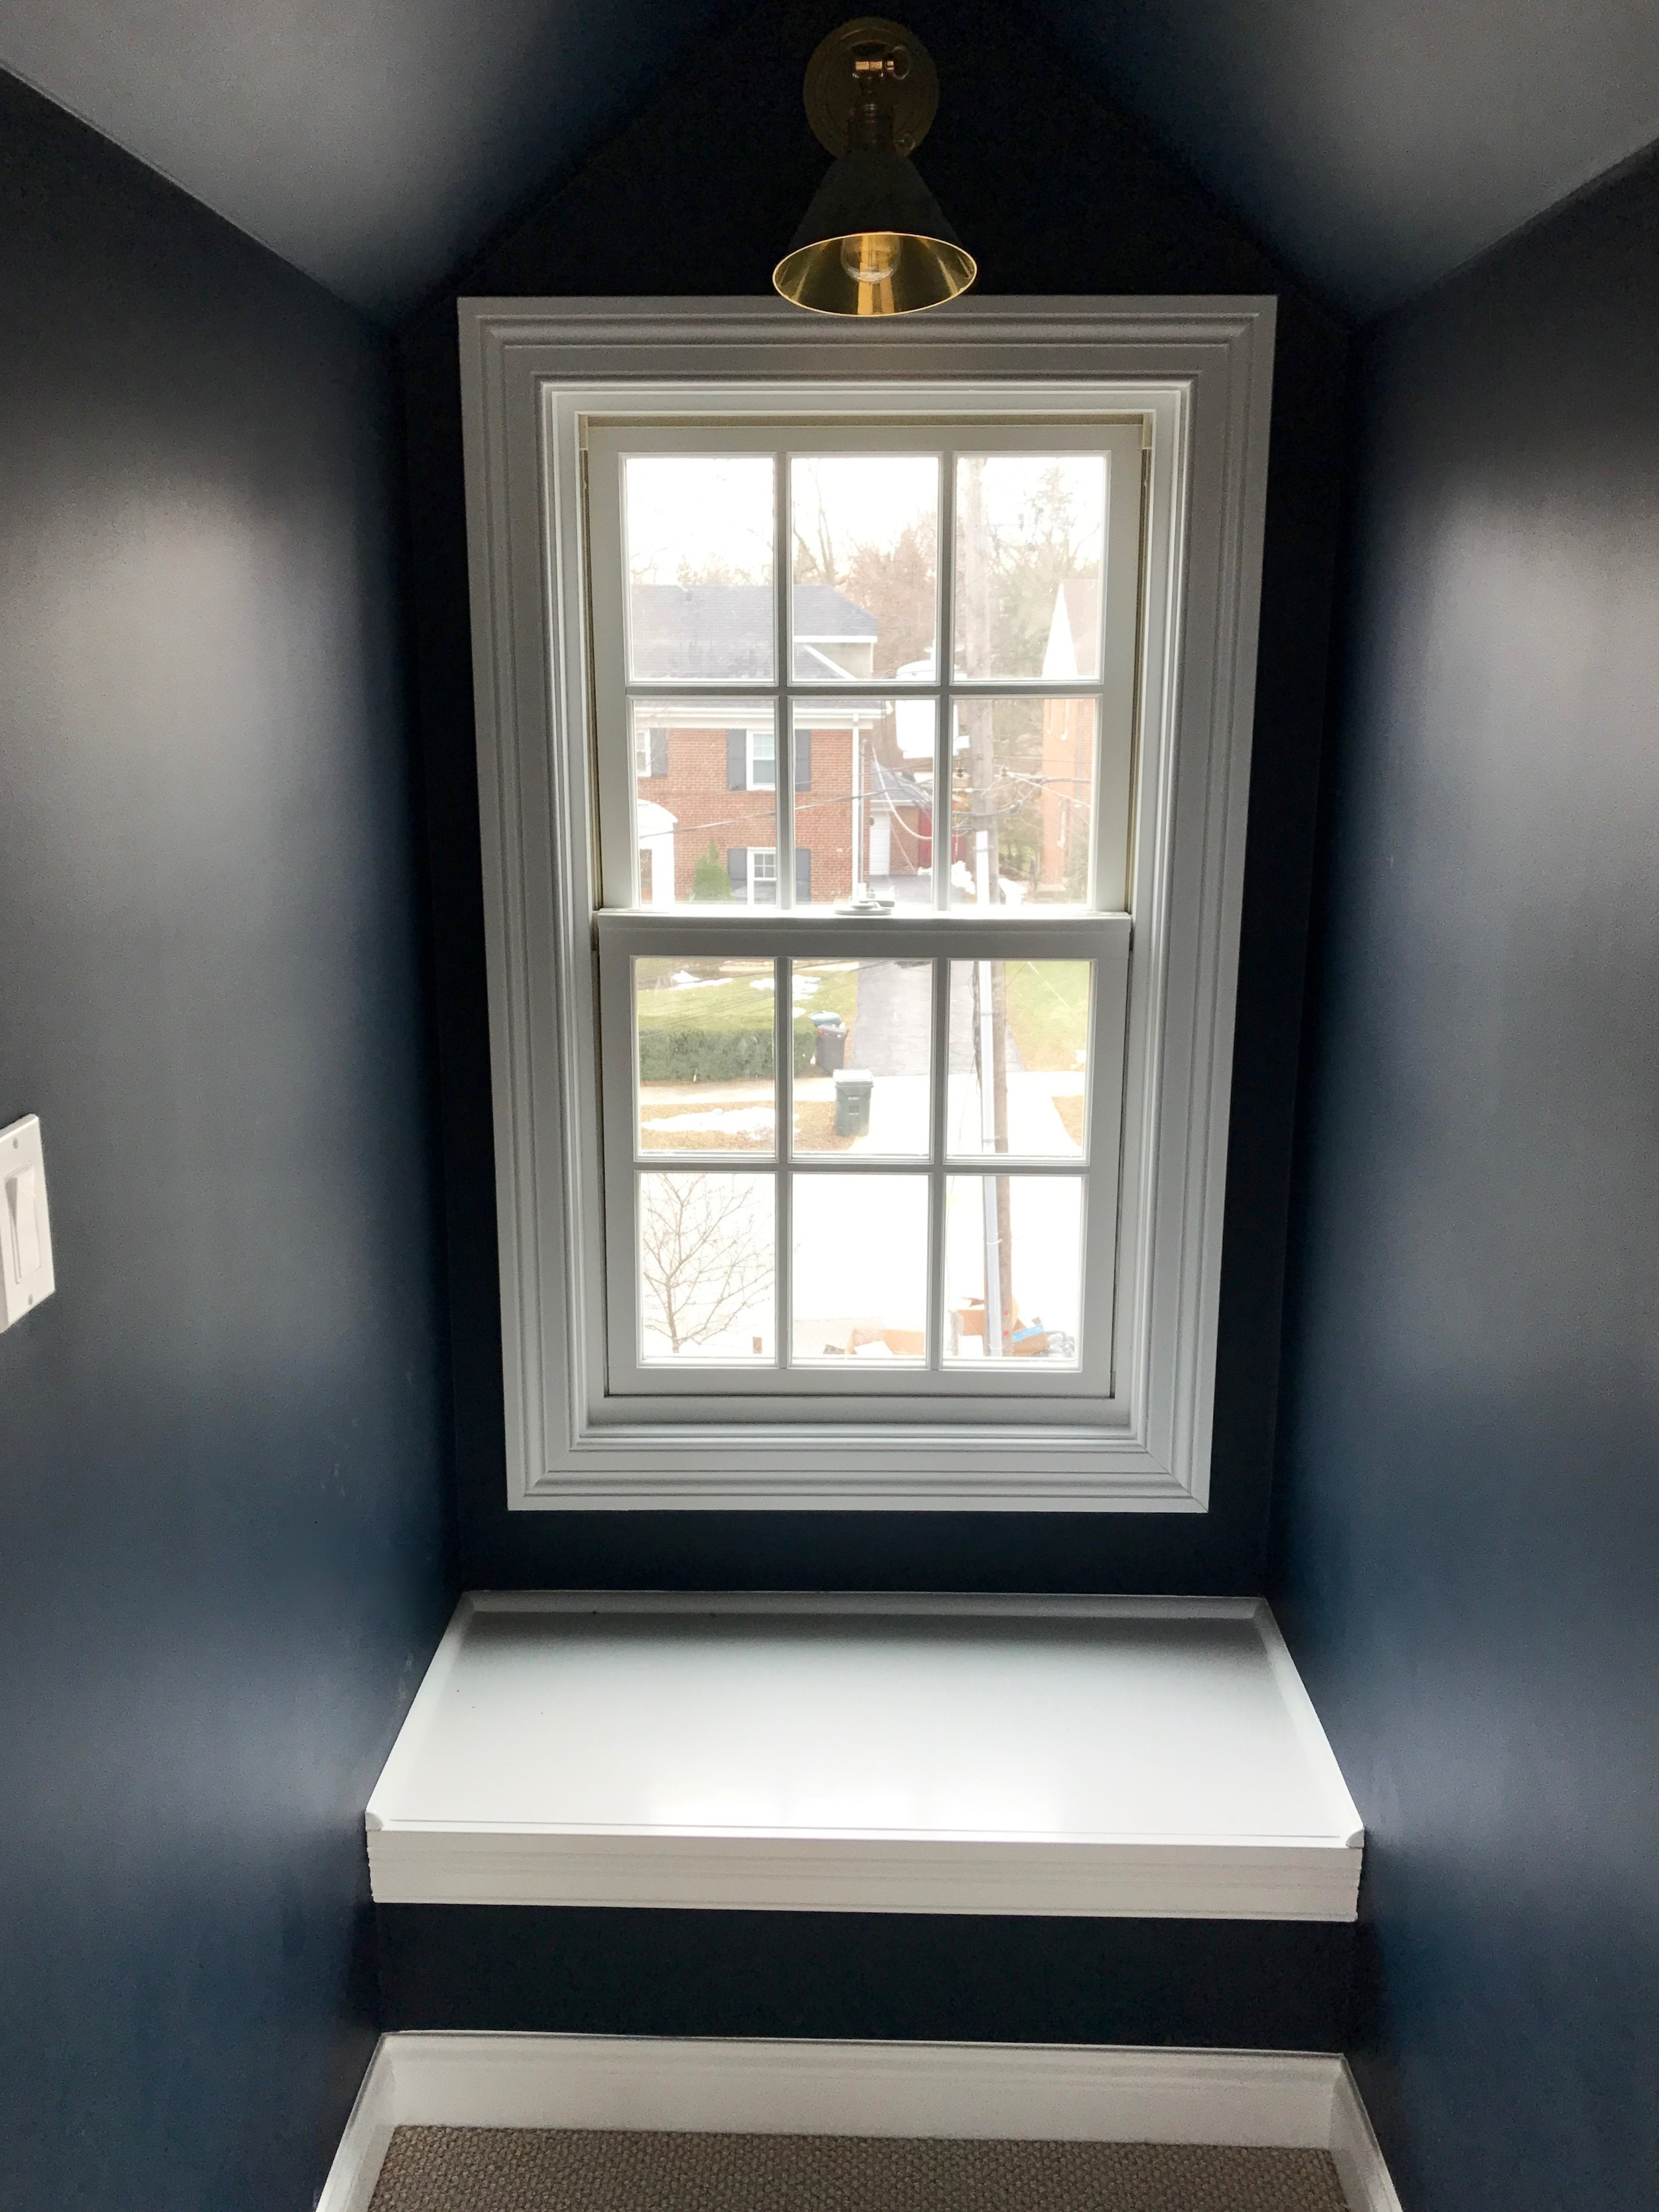 Installing a window seat in the dormer just seemed like the right thing to do. Also approved by the Fairy Castle Building Authority.